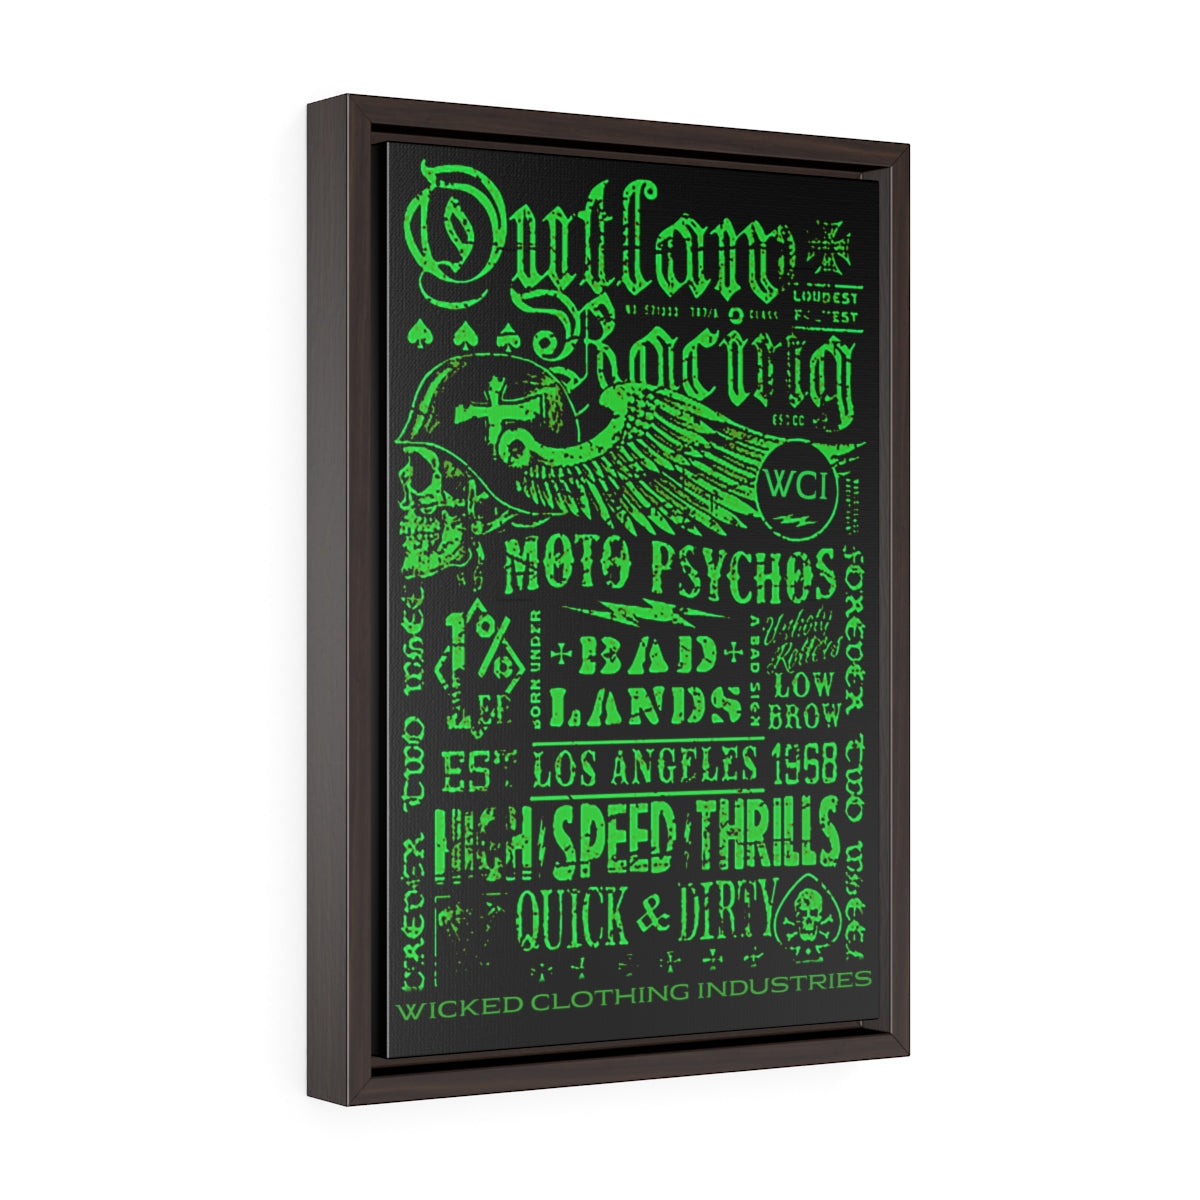 Outlaw Racing/Vertical Framed  Wrap Canvas